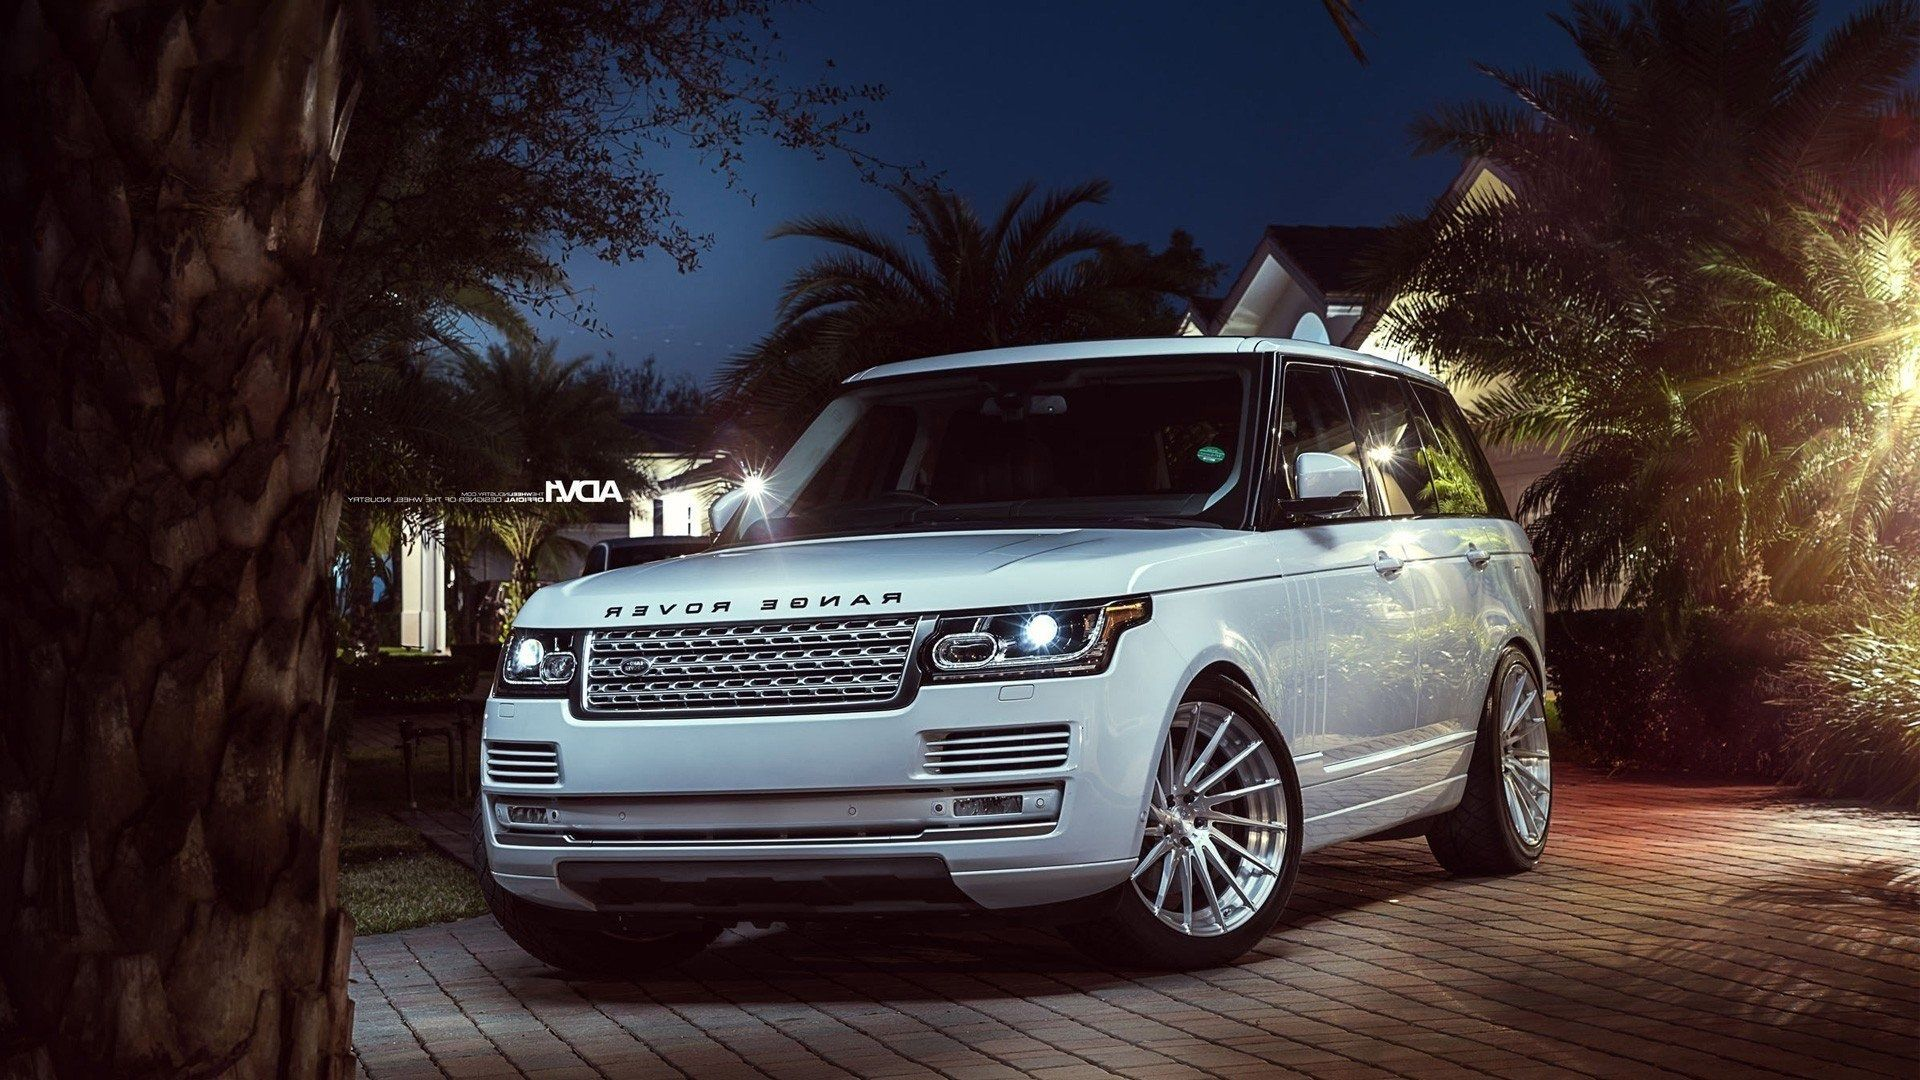 1920x1080 Range Rover Ultra Hd Desktop Wallpaper Range